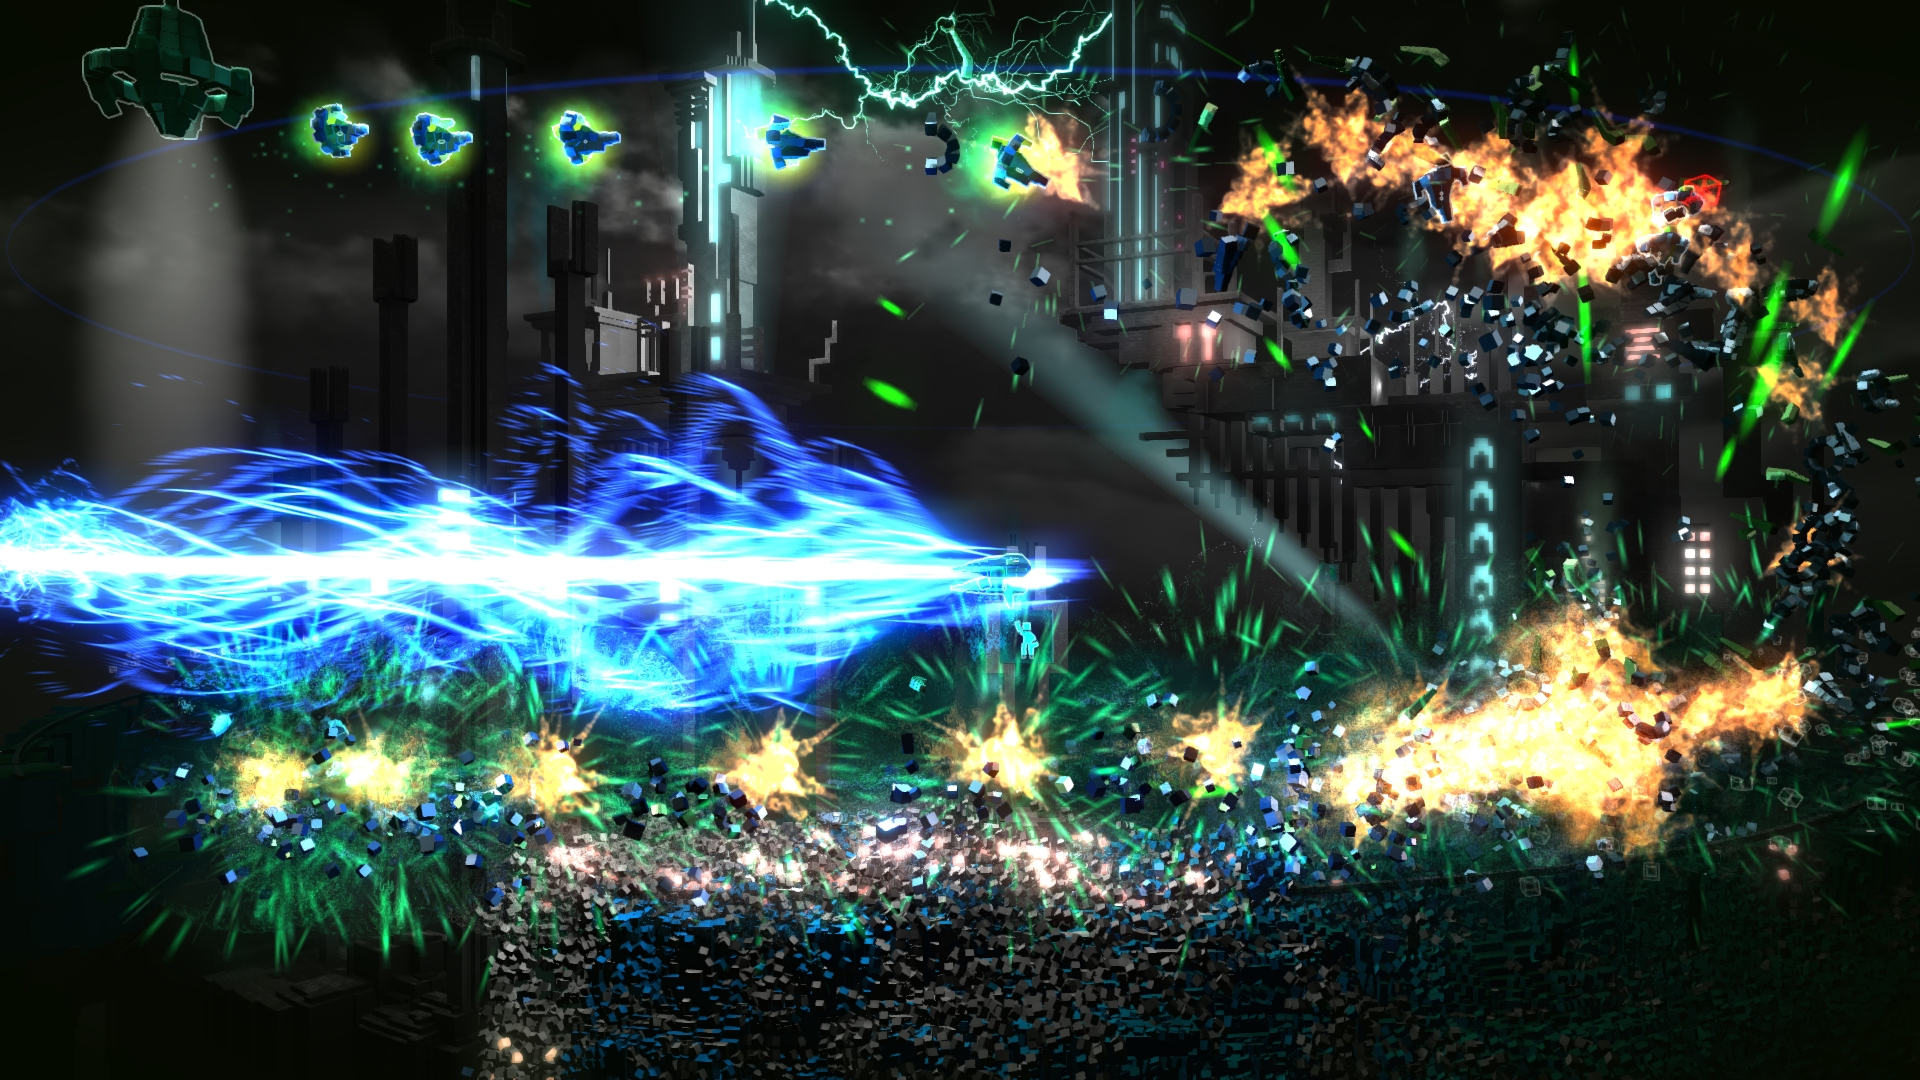 Colourful PS4 shooter Resogun has blasted its way on to PS Vita